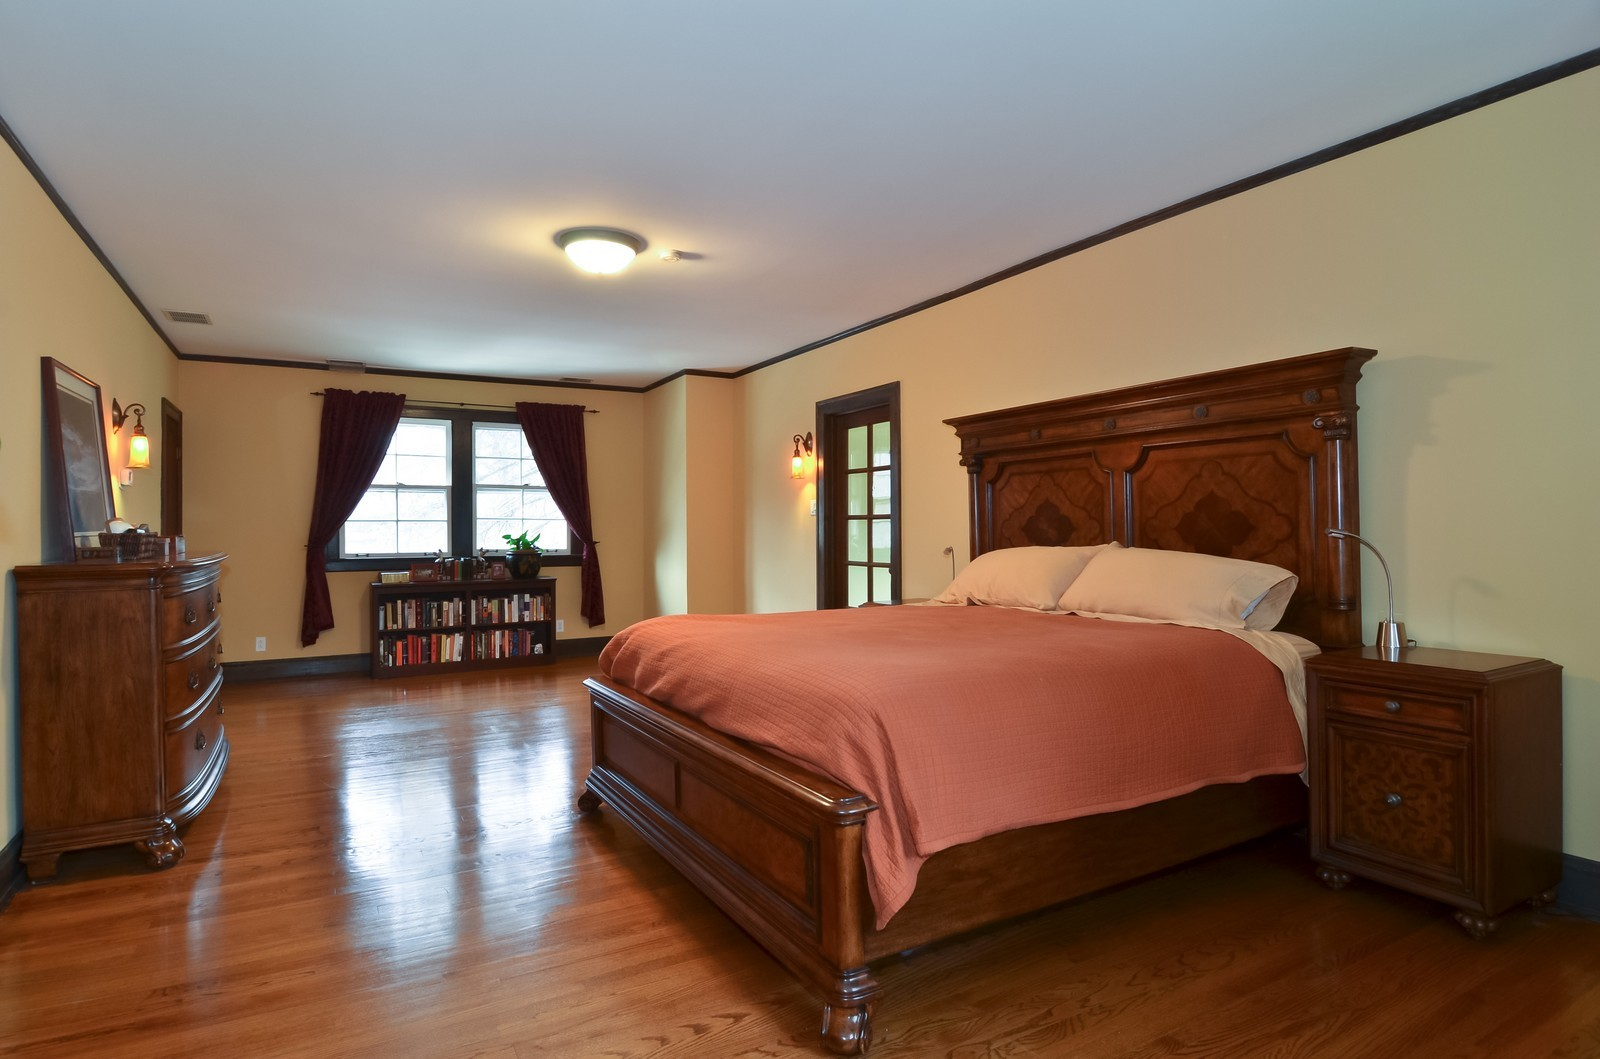 Real Estate Photography - 6270 N Louise, Chicago, IL, 60646 - Master Bedroom